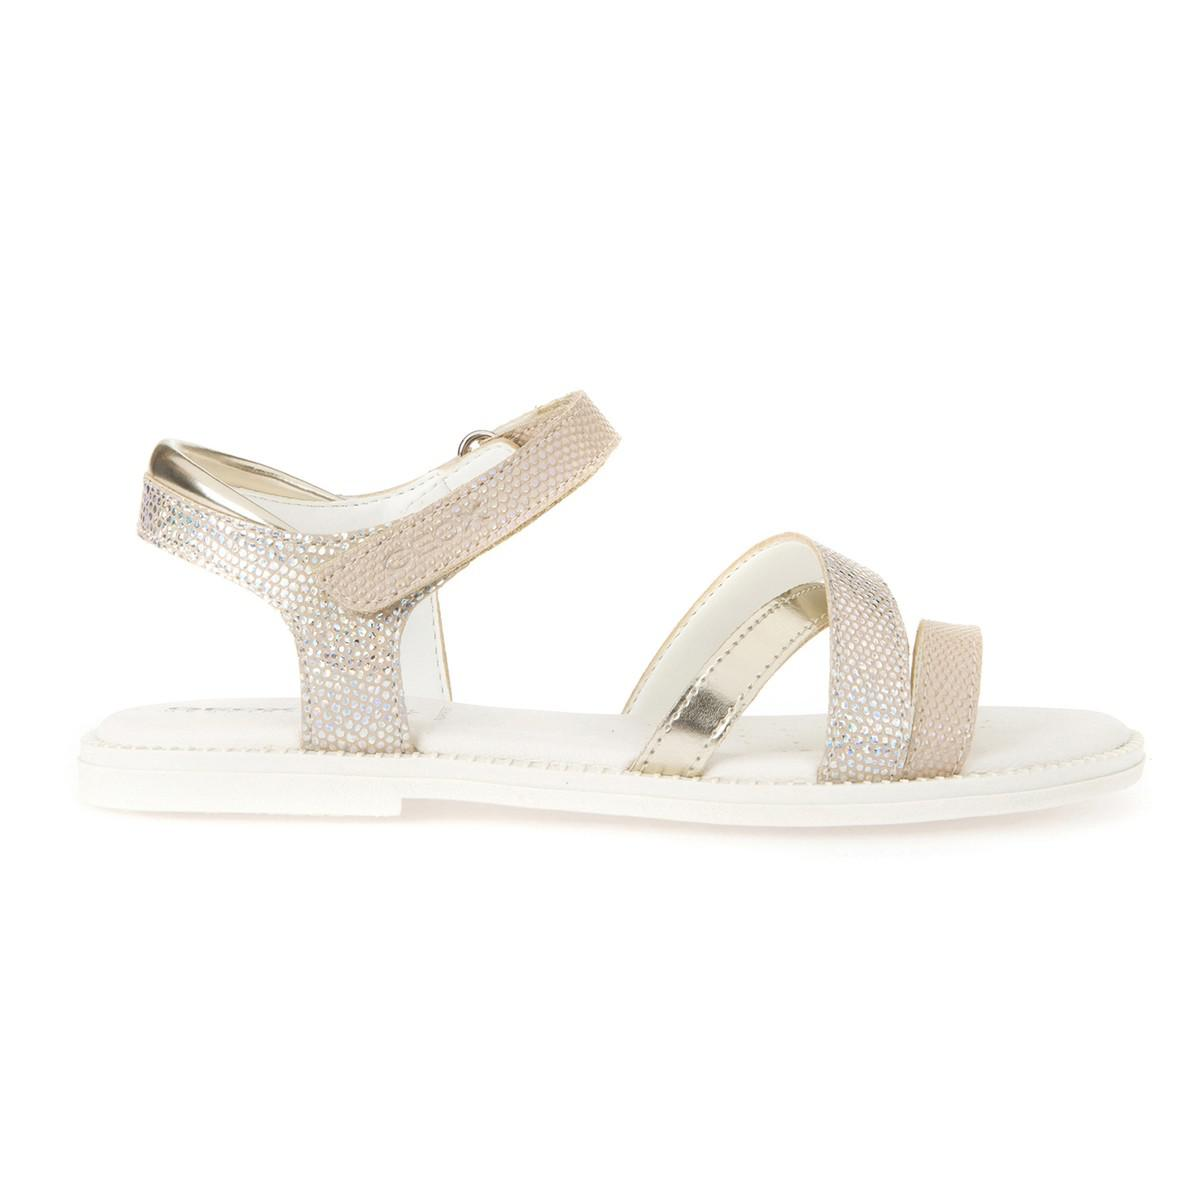 27fccab86faa9 Lyst - Geox Js Karly Gd Sandals in Natural